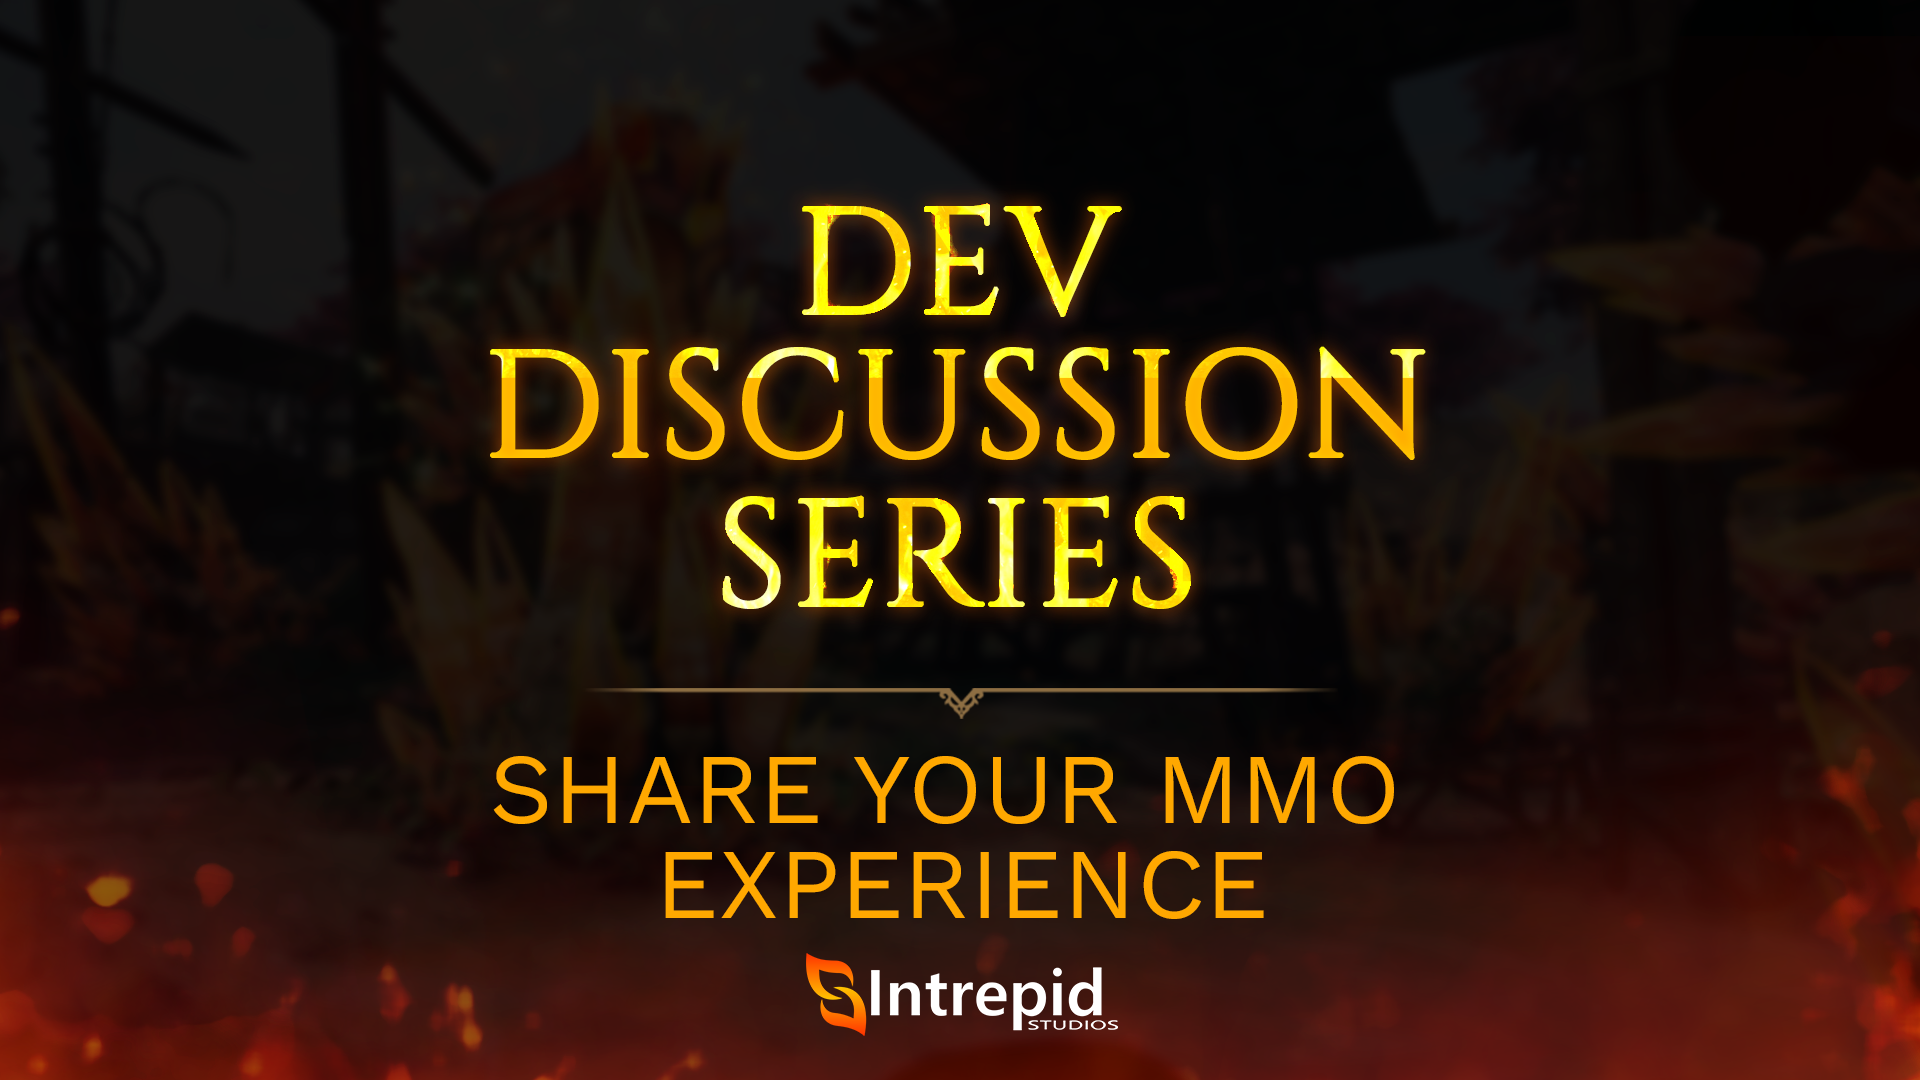 2019_Dev_Discussion_Series_Share_Your_MMO_Experience.png